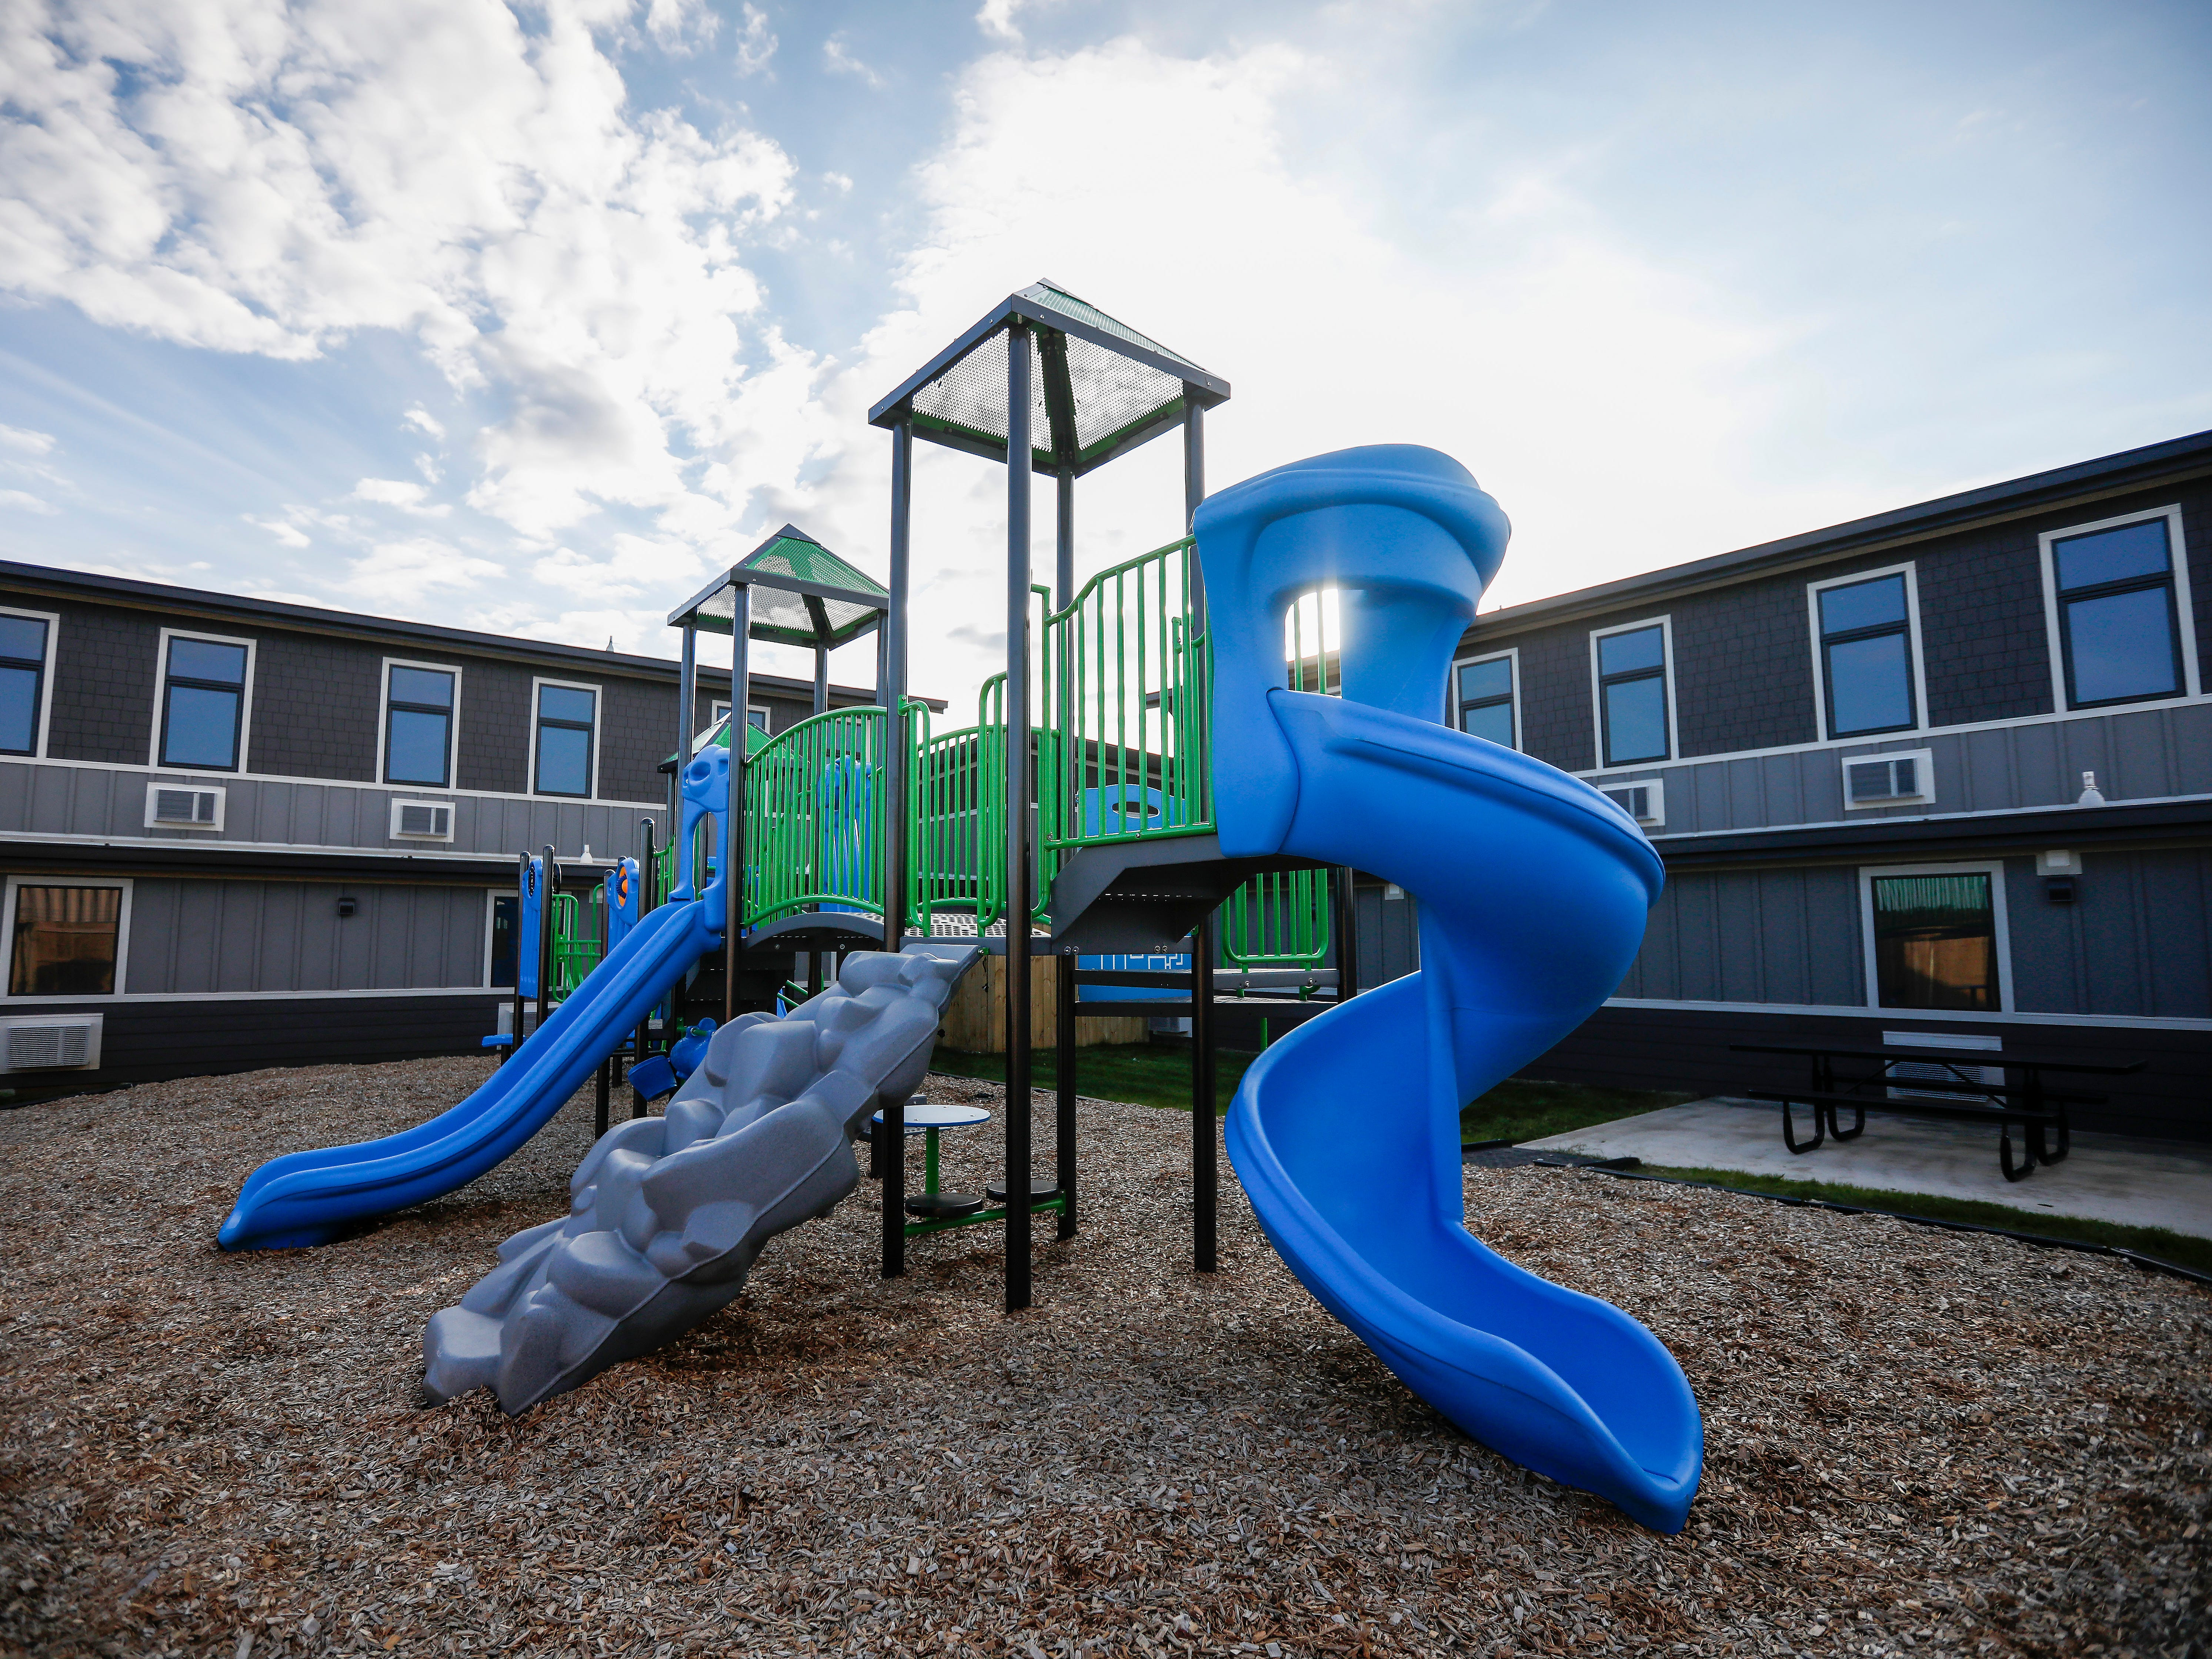 The playground at The Kitchen's new Emergency Shelter located at 1855 E. Chestnut Expressway.